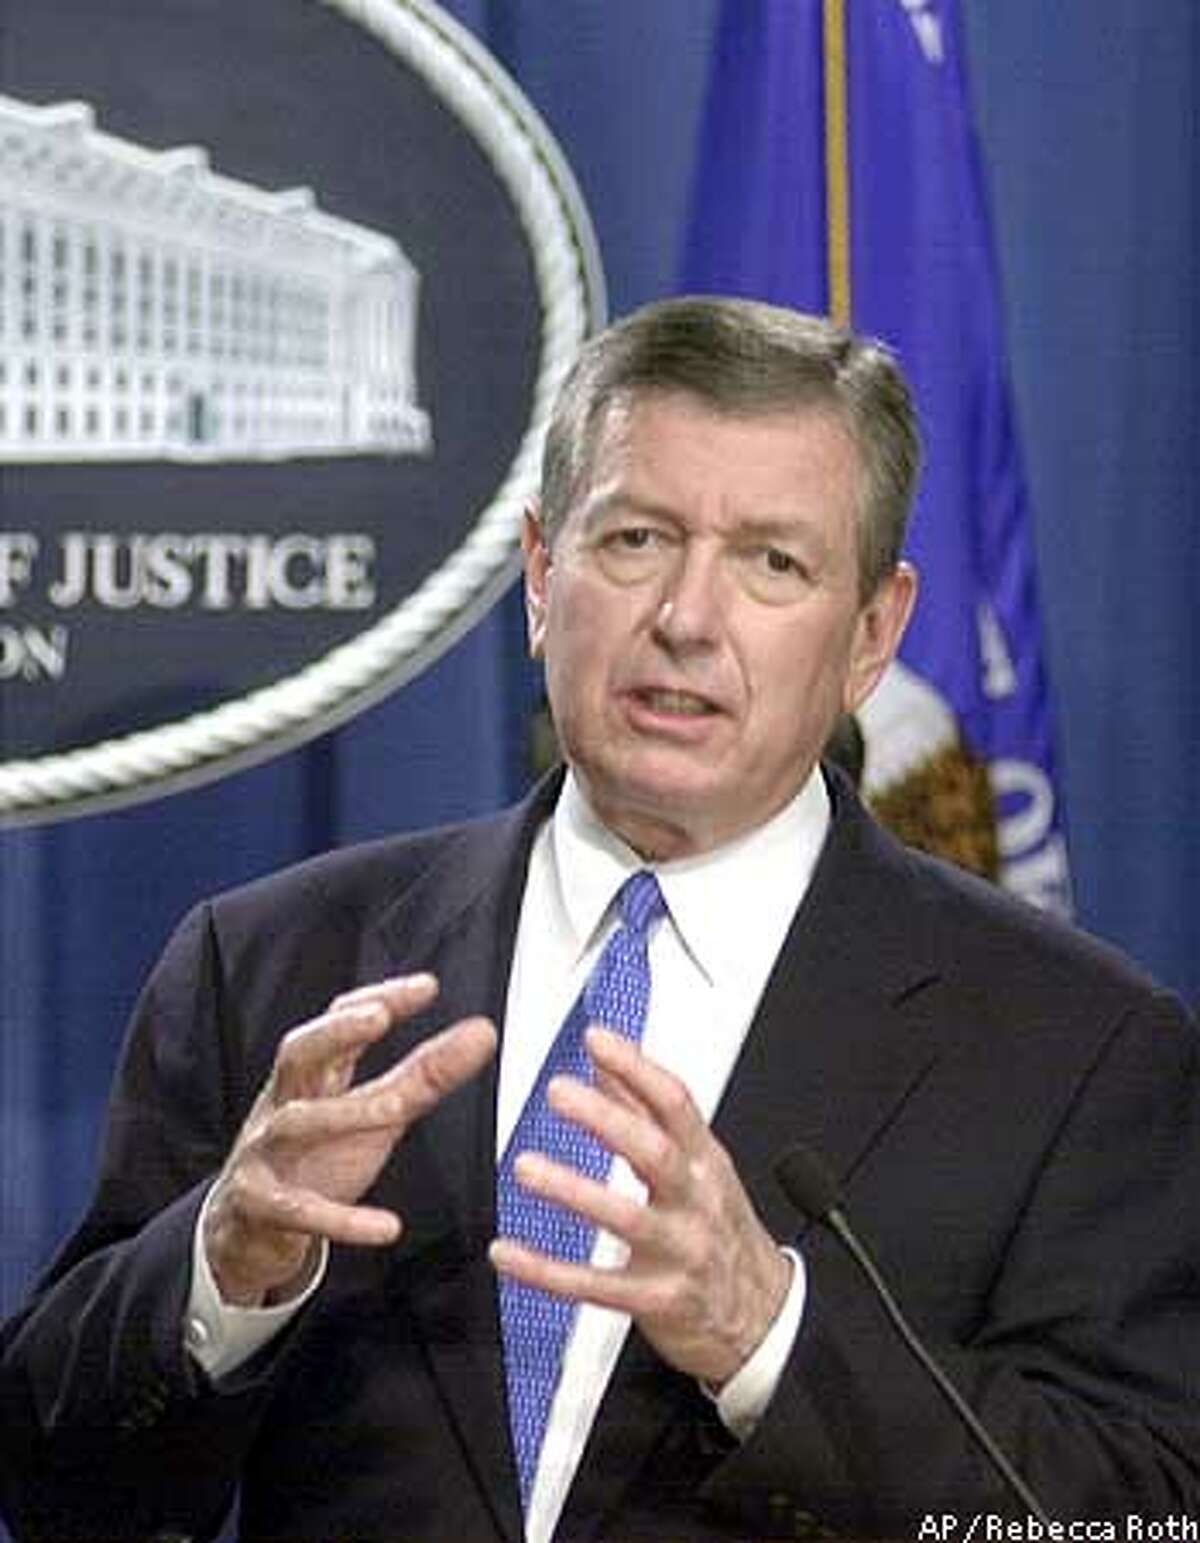 """Attorney General John Ashcroft gestures during a news conference at the Justice Department in Washington Monday, Feb. 24, 2003 to announce that three dozen people were charged Monday in federal indictments with trafficking in illegal from coast to coast, using both traditional stores and the Internet. Twenty-seven people were charged in 17 indictments returned by a grand jury western Pennsylvania as part of """"Operation Pipe Dreams,"""" an investigation that stretched from Pittsburgh to Phoenix to southern California. (AP Photo/Rebecca Roth)"""